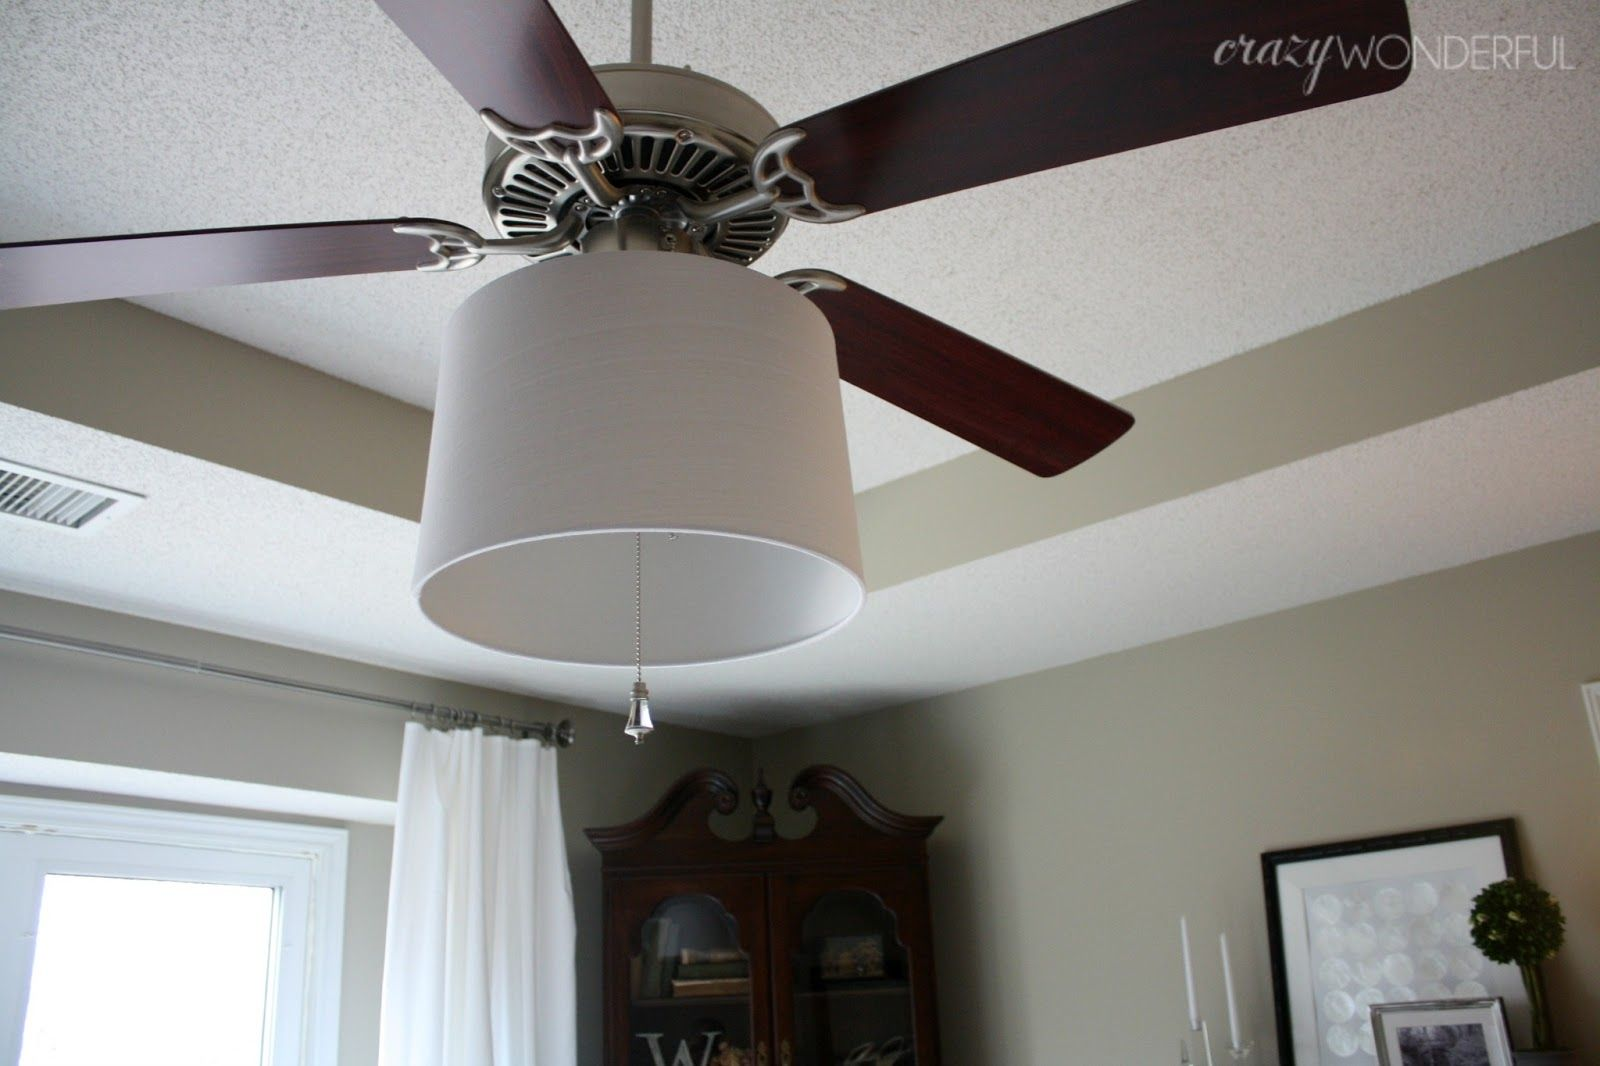 Paper shades for ceiling fan lights httpcreativechairsandtables paper shades for ceiling fan lights aloadofball Image collections